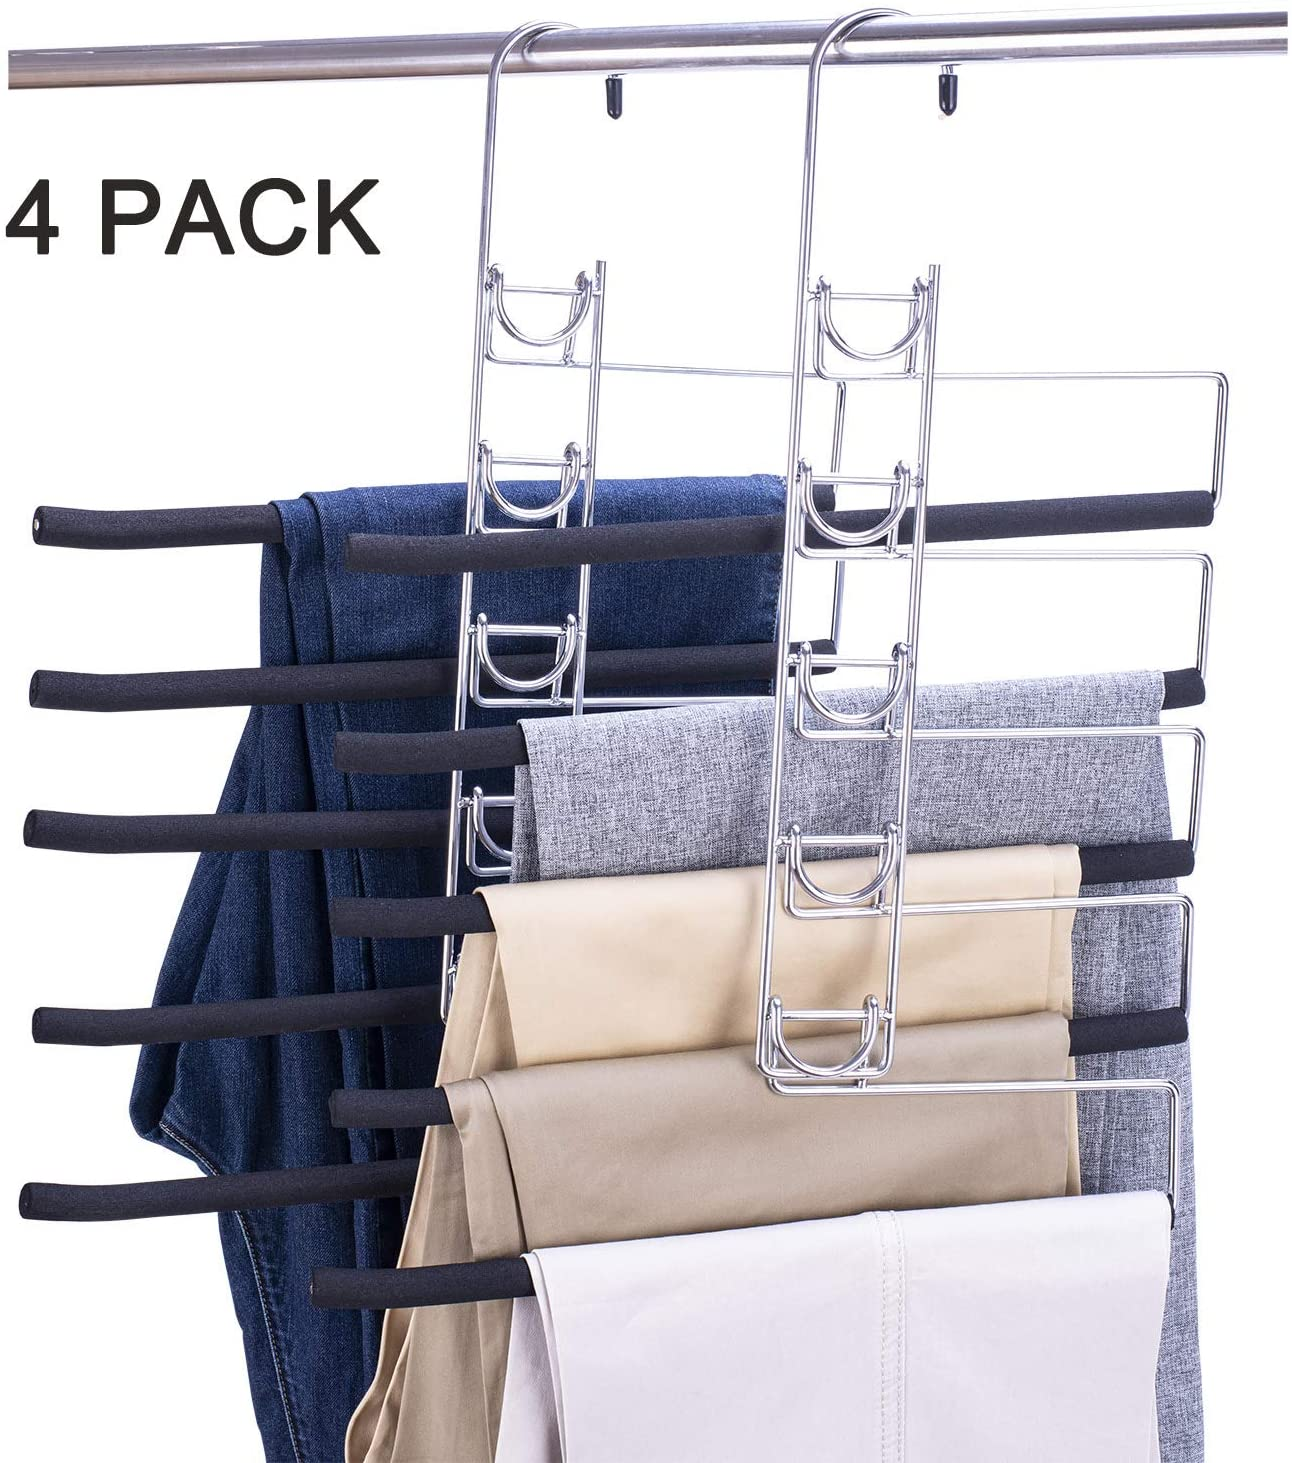 Nature Smile 4Pack - 5 in 1 Heavy Duty Metal Pants Slack Hangers,Detachable Multi Layers Blanket Rack, Space Saver Closet Storage Organizer for Garden Flags TableclothTrousers Jeans Scarf